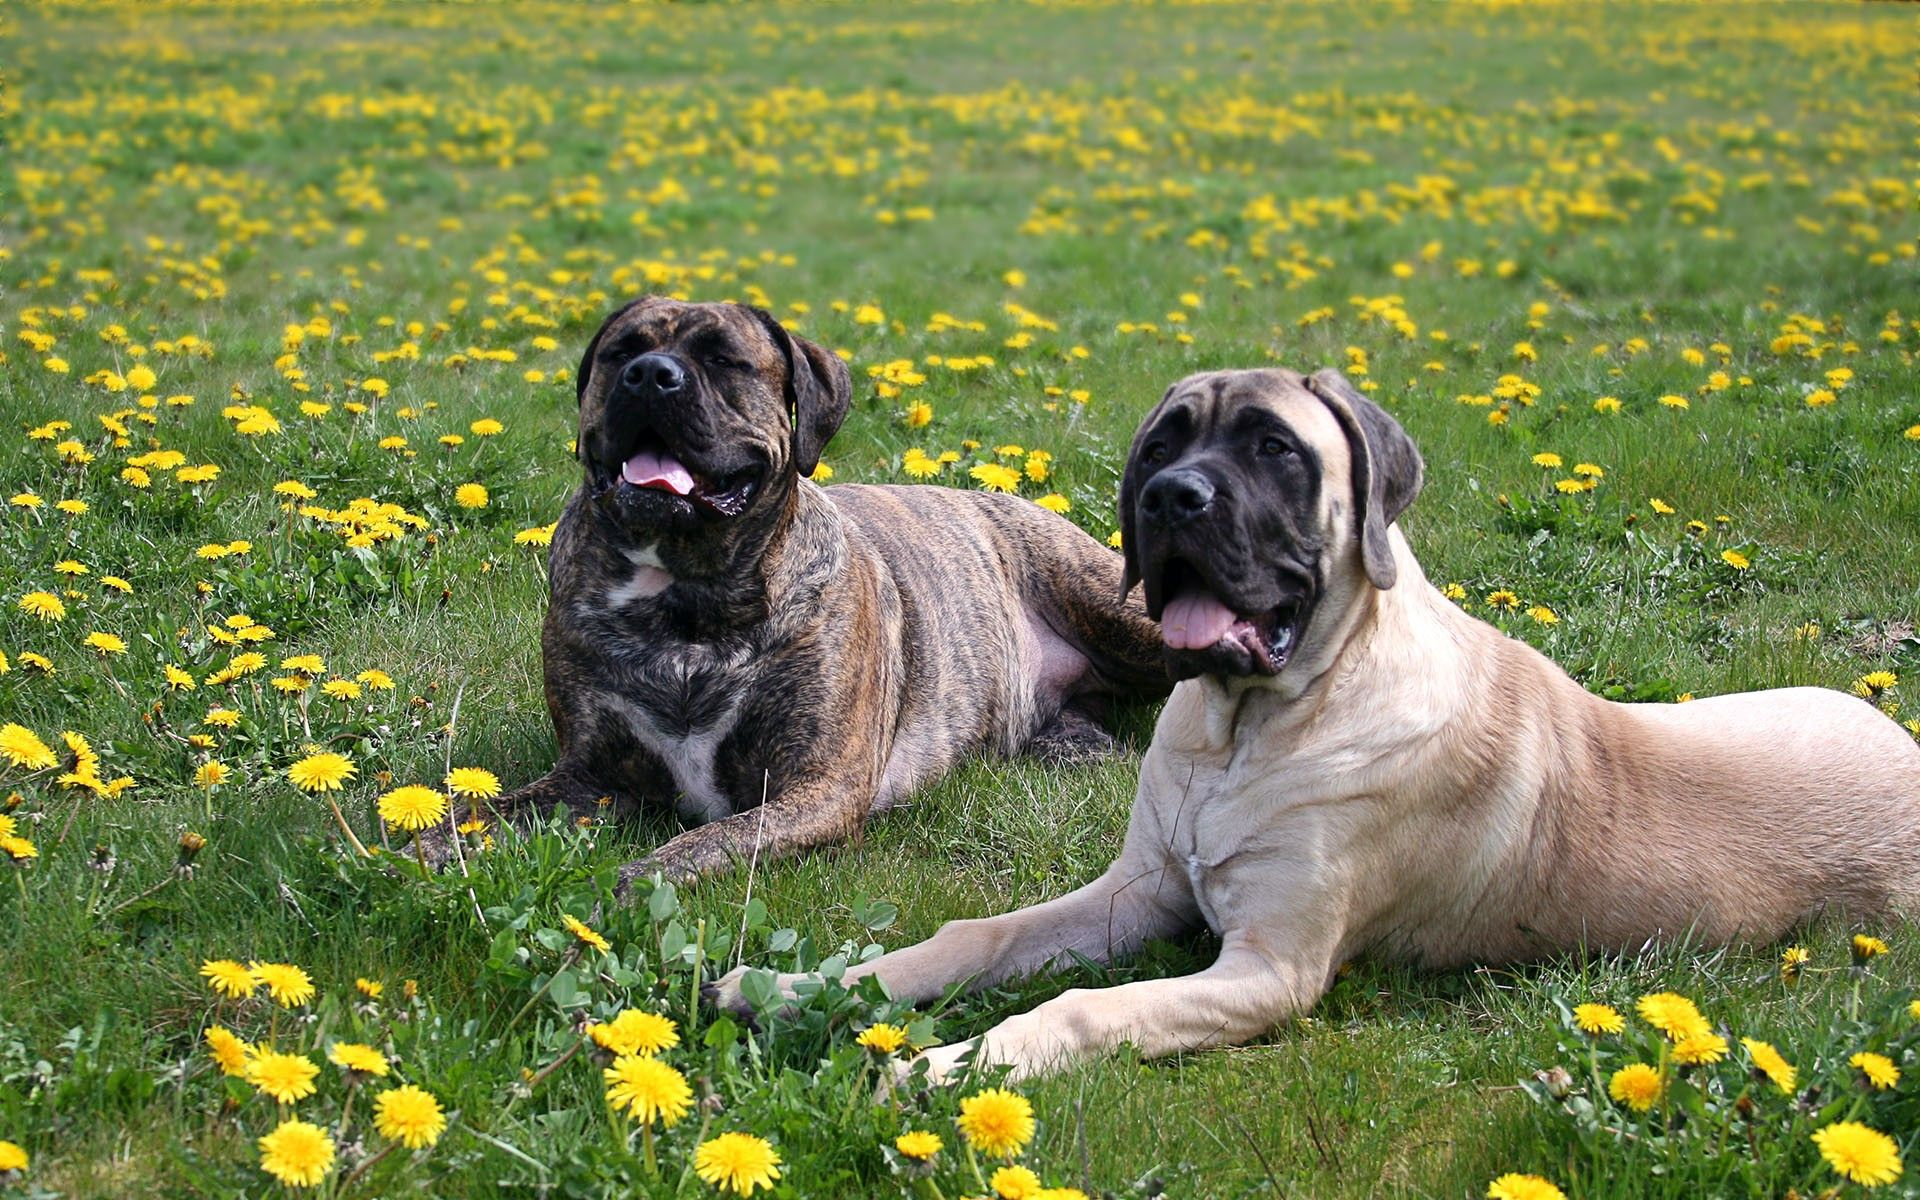 106393 download wallpaper Animals, Dogs, Shepherds, Grass, Flowers screensavers and pictures for free